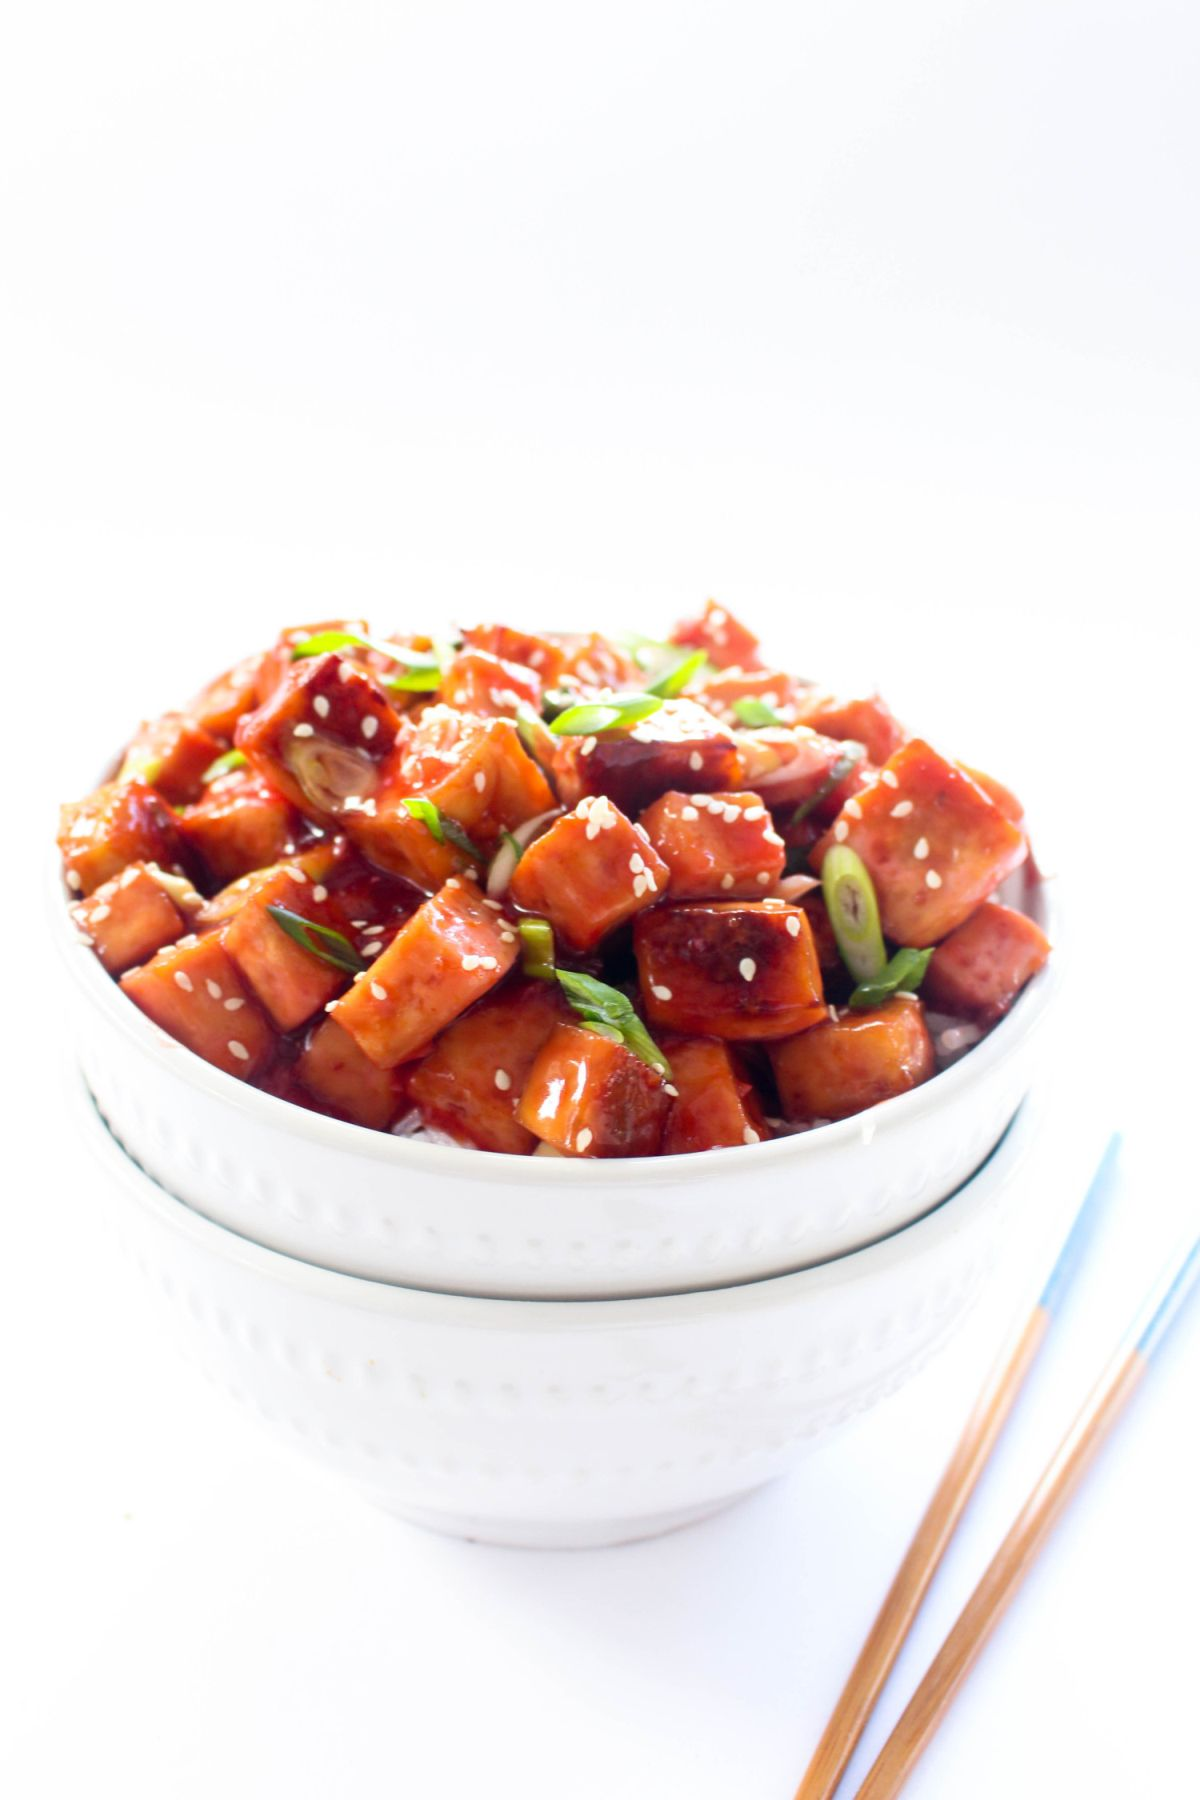 Tofu Rice Bowls with Sweet and Sour Blood Orange Sauce Recipe